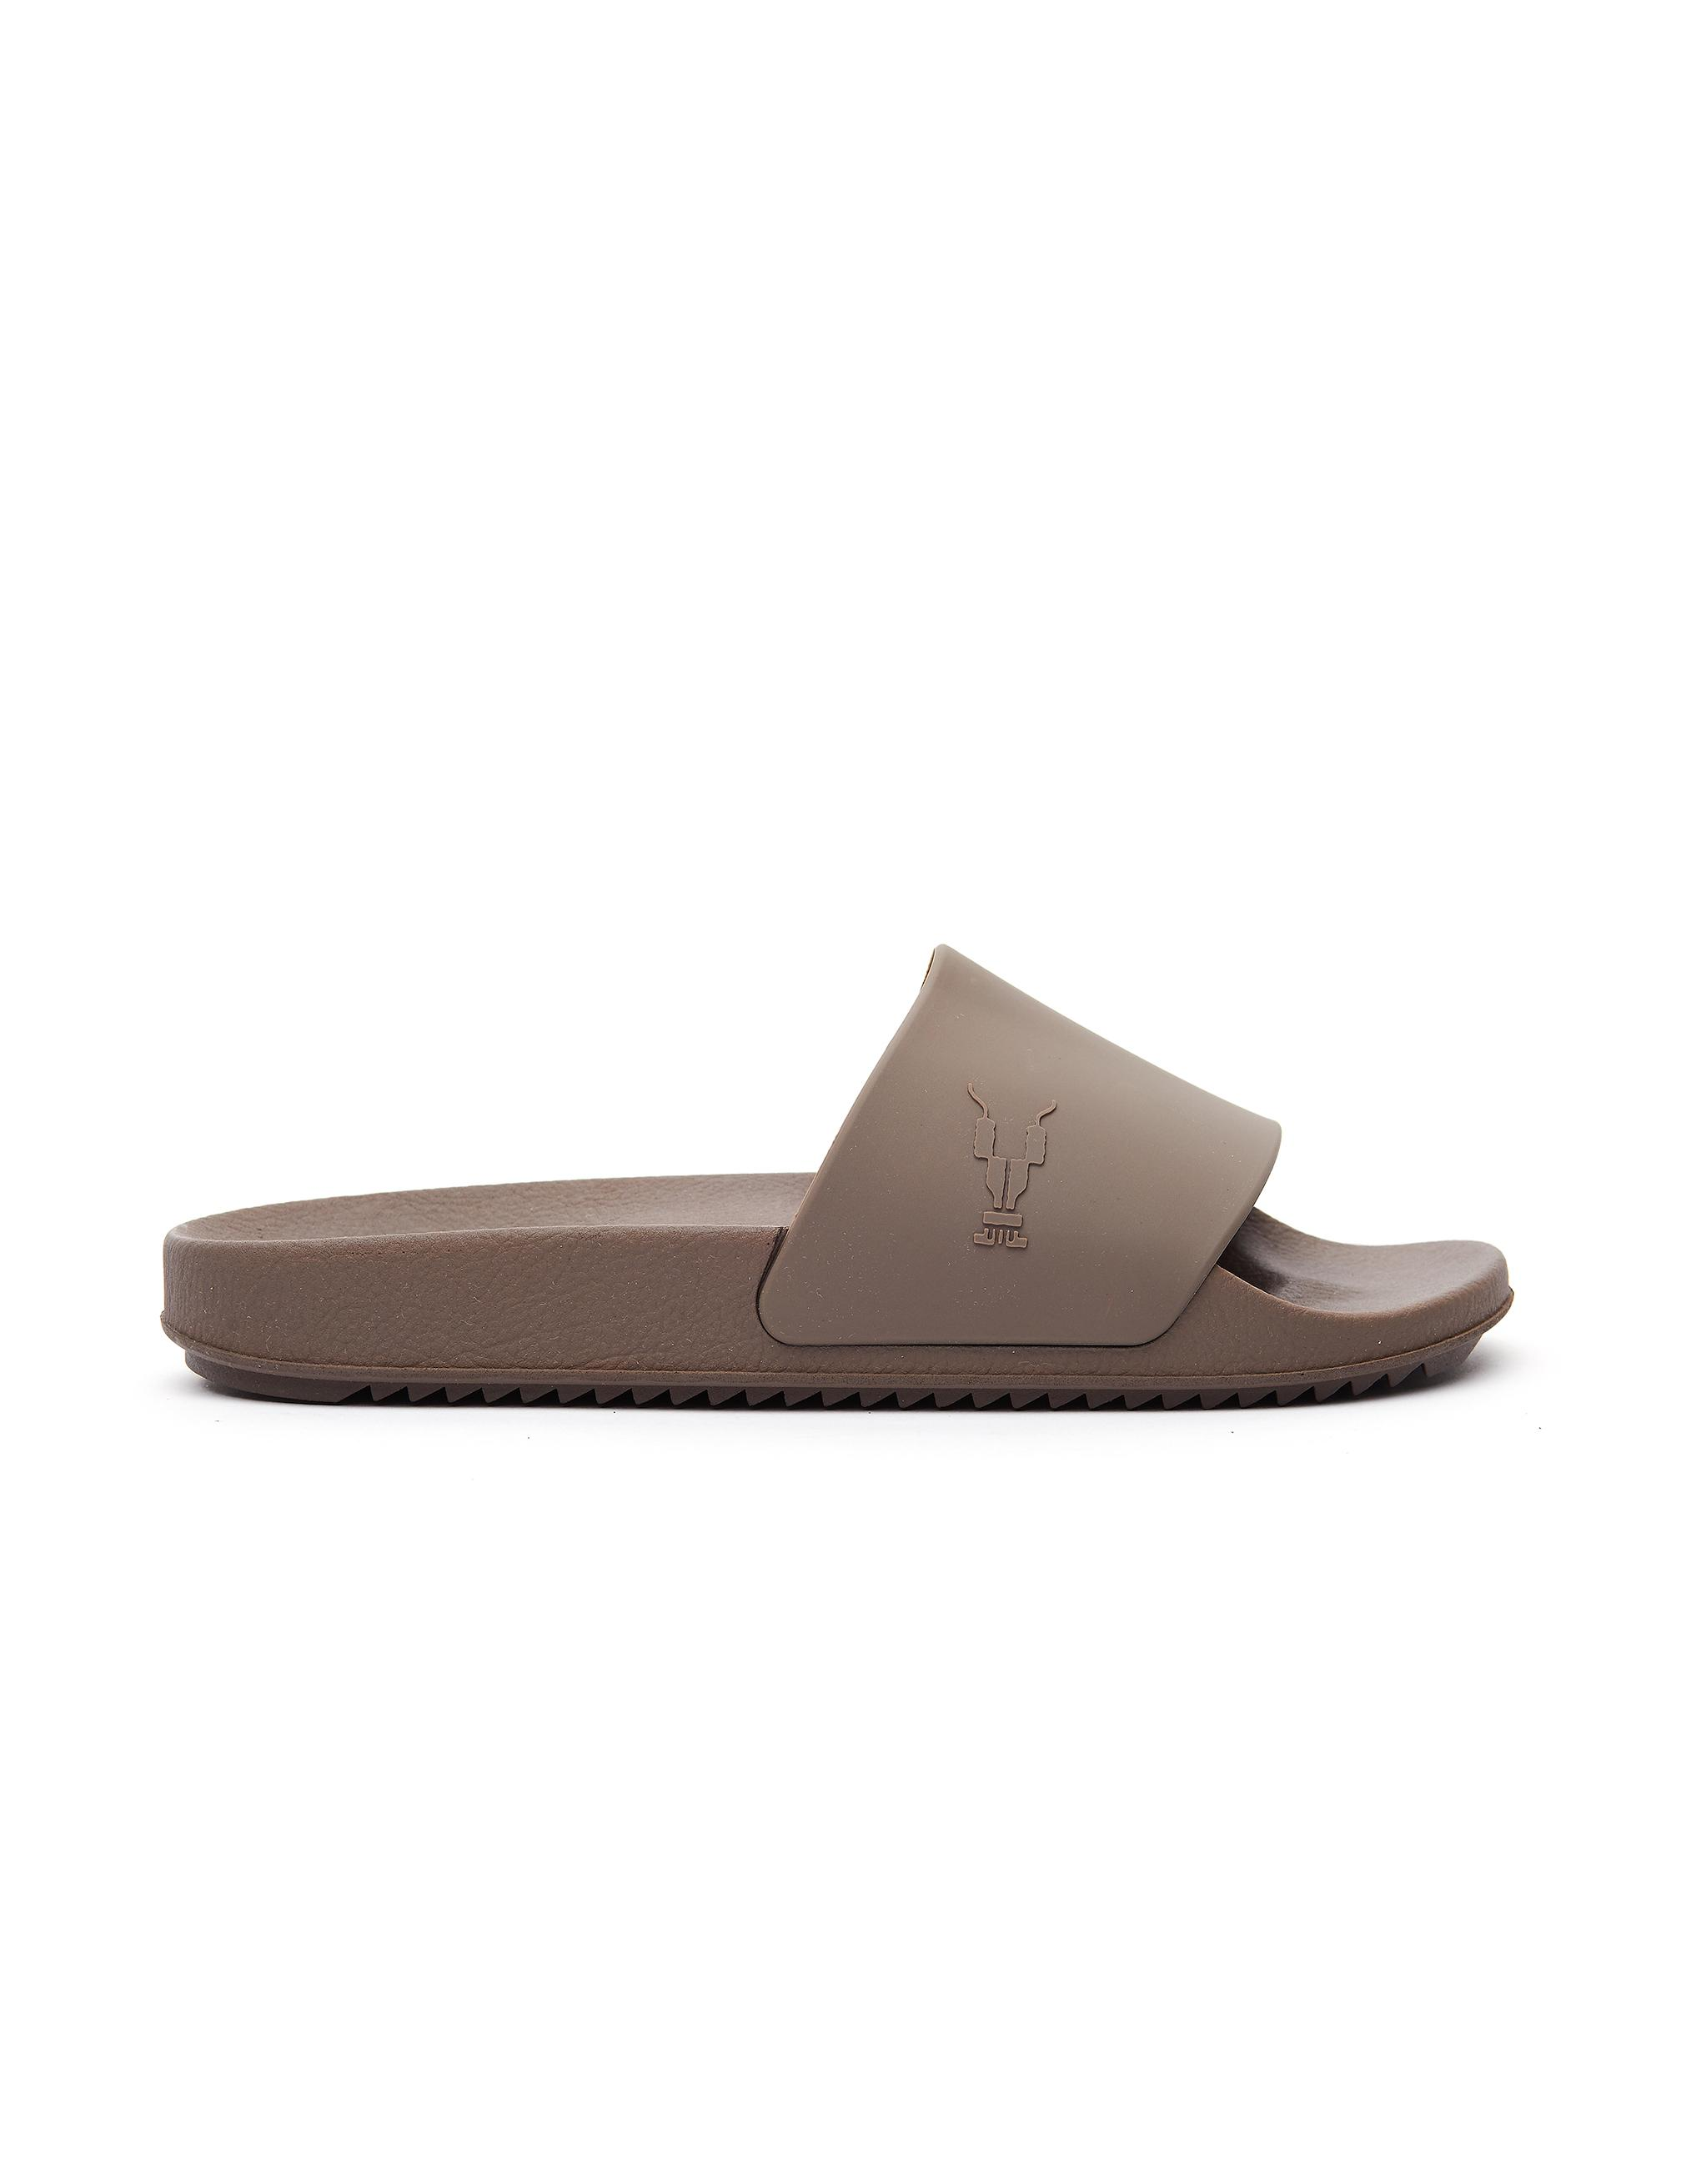 ee770962a556 Lyst - DRKSHDW by Rick Owens Dust Grey Rubber Slides in Gray